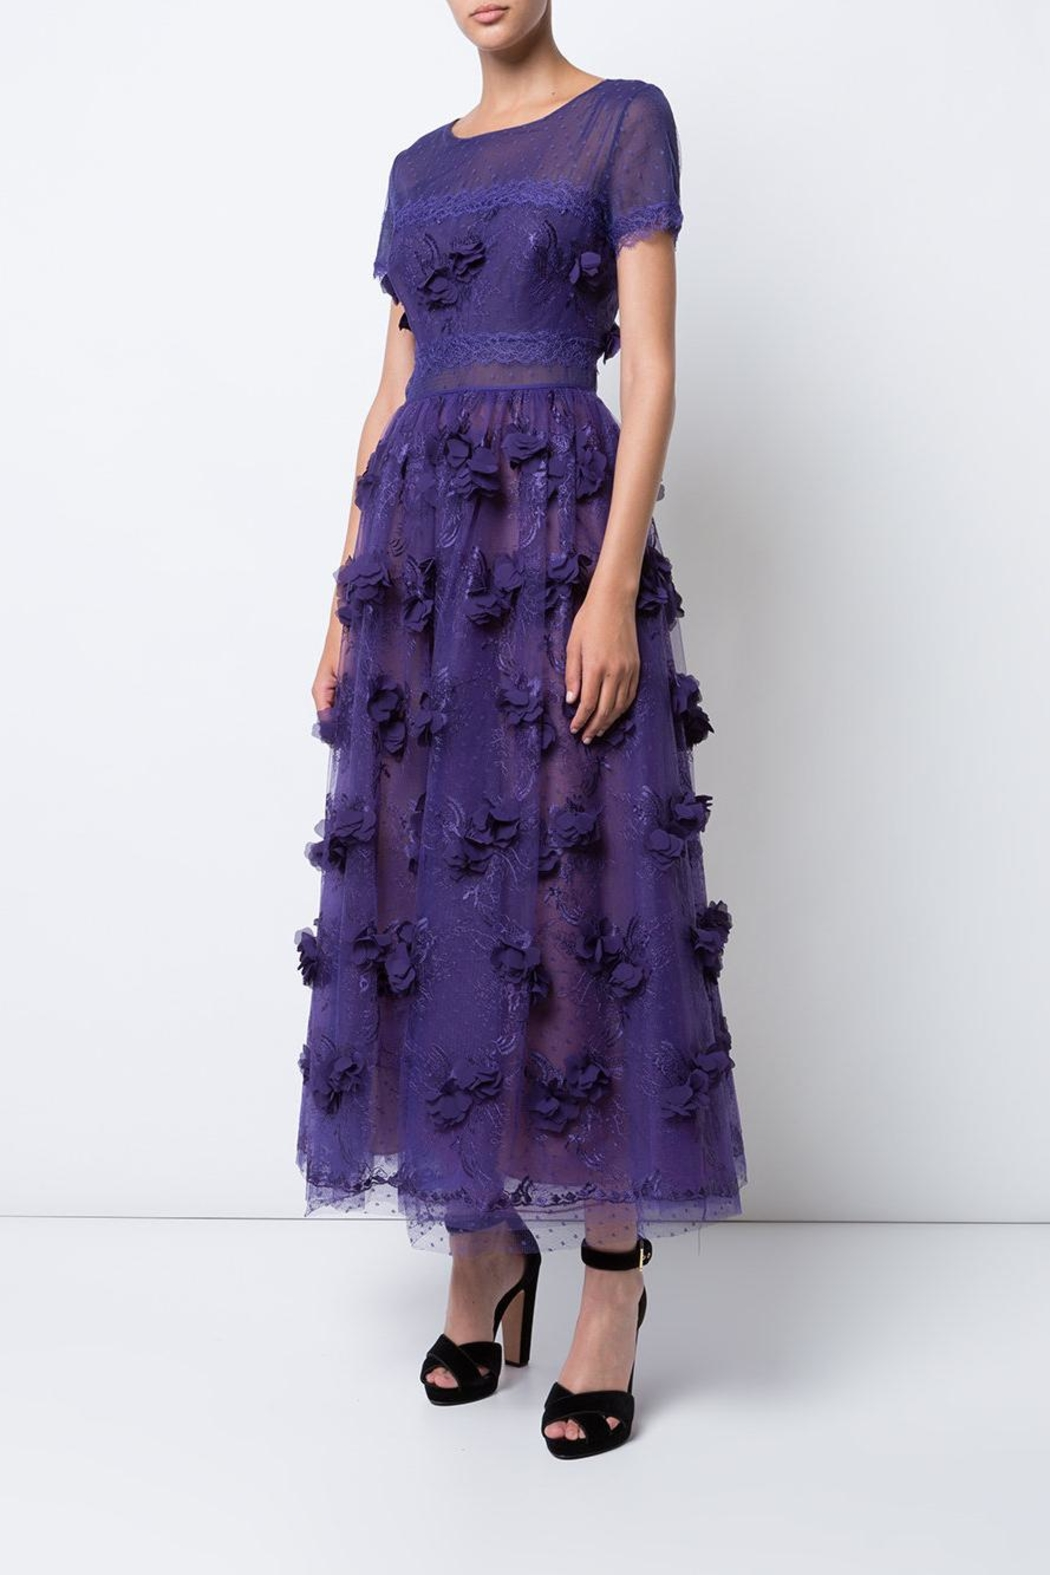 Notte by Marchesa Sheer Floral Dress - Main Image